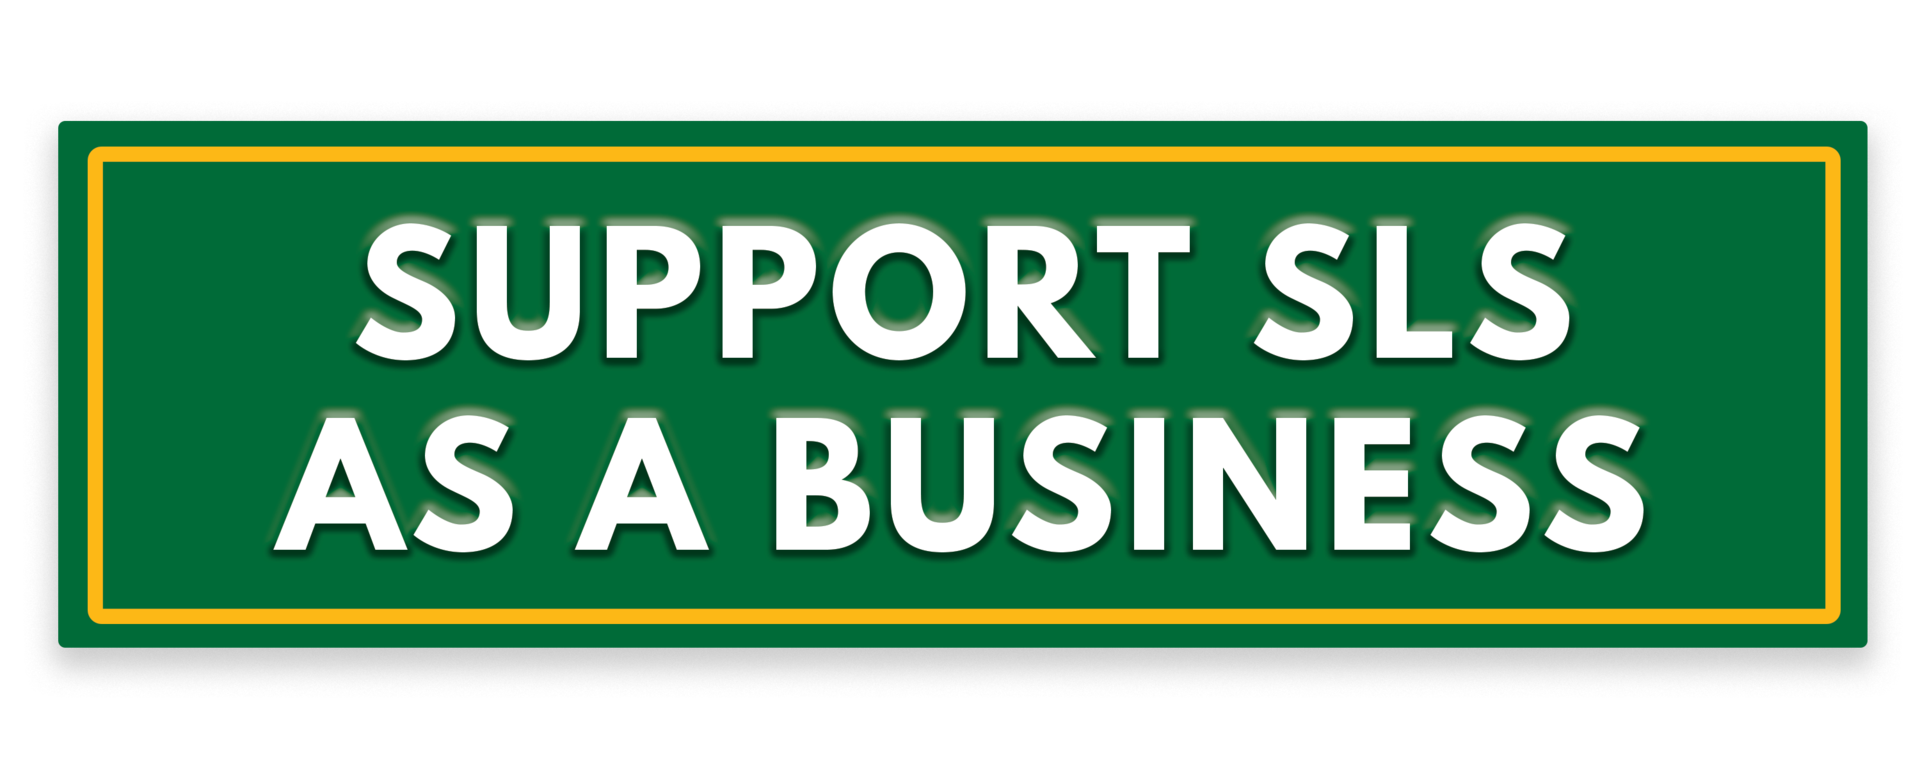 Support SLS as a Business